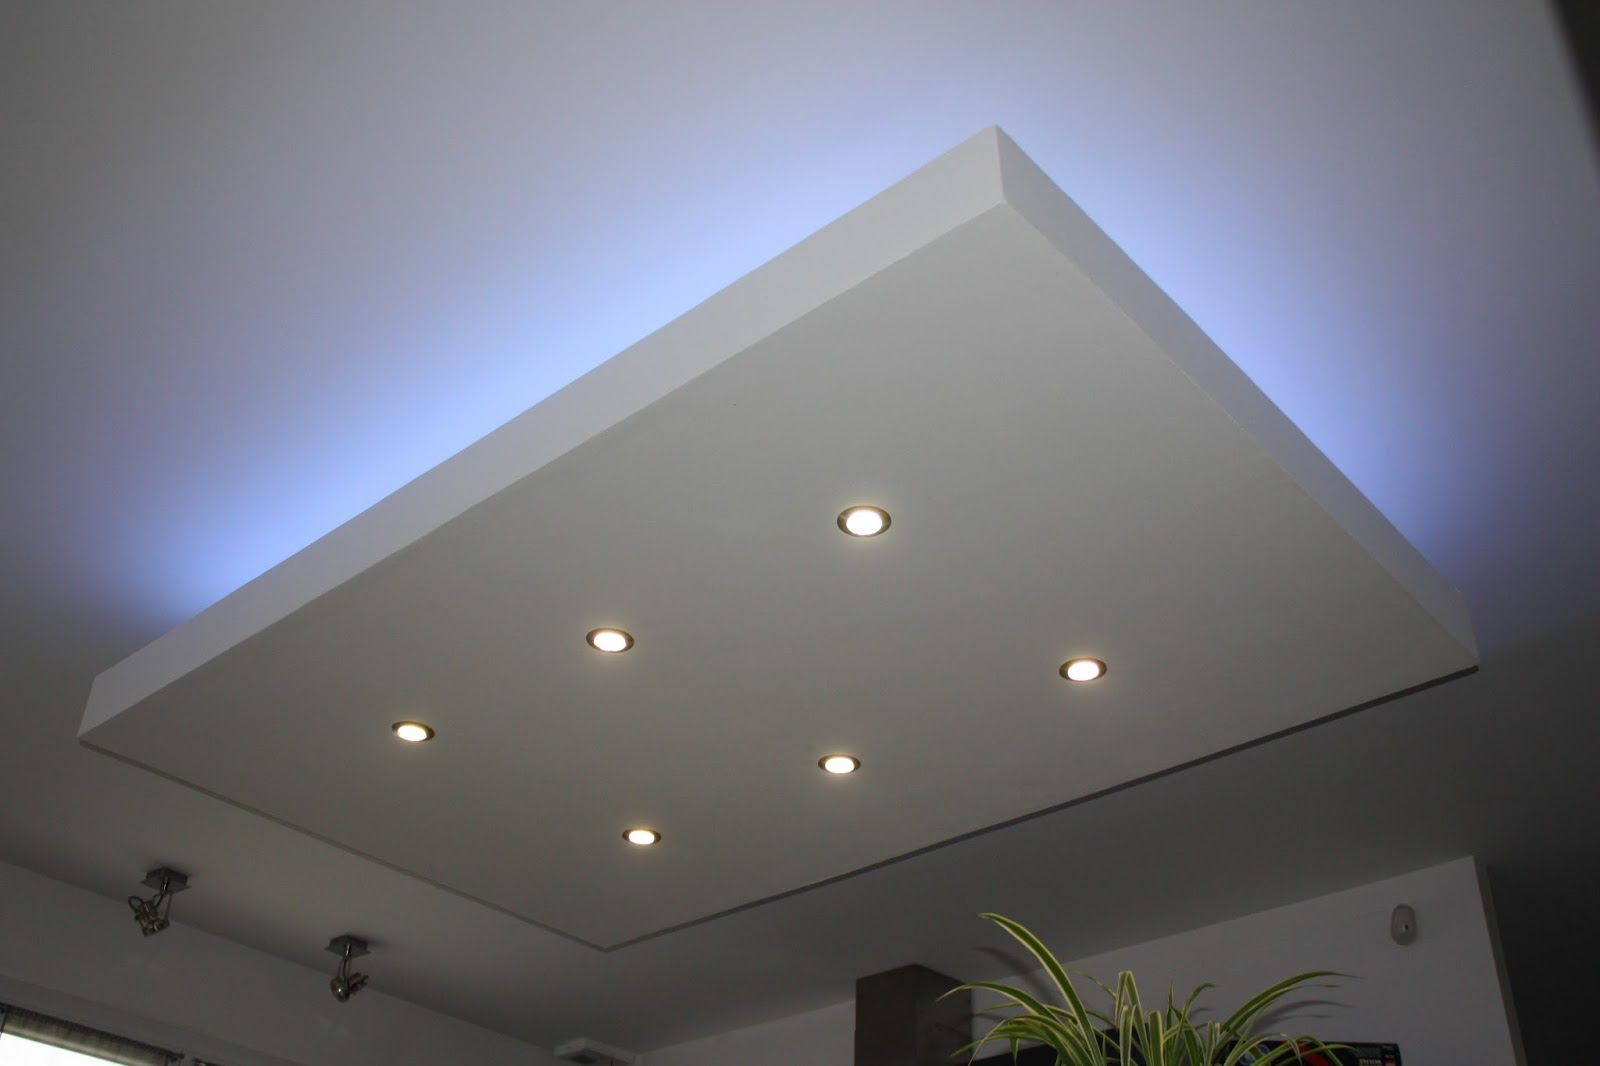 Nouvel article eclairage led indirect sur faux plafond for Type de faux plafond